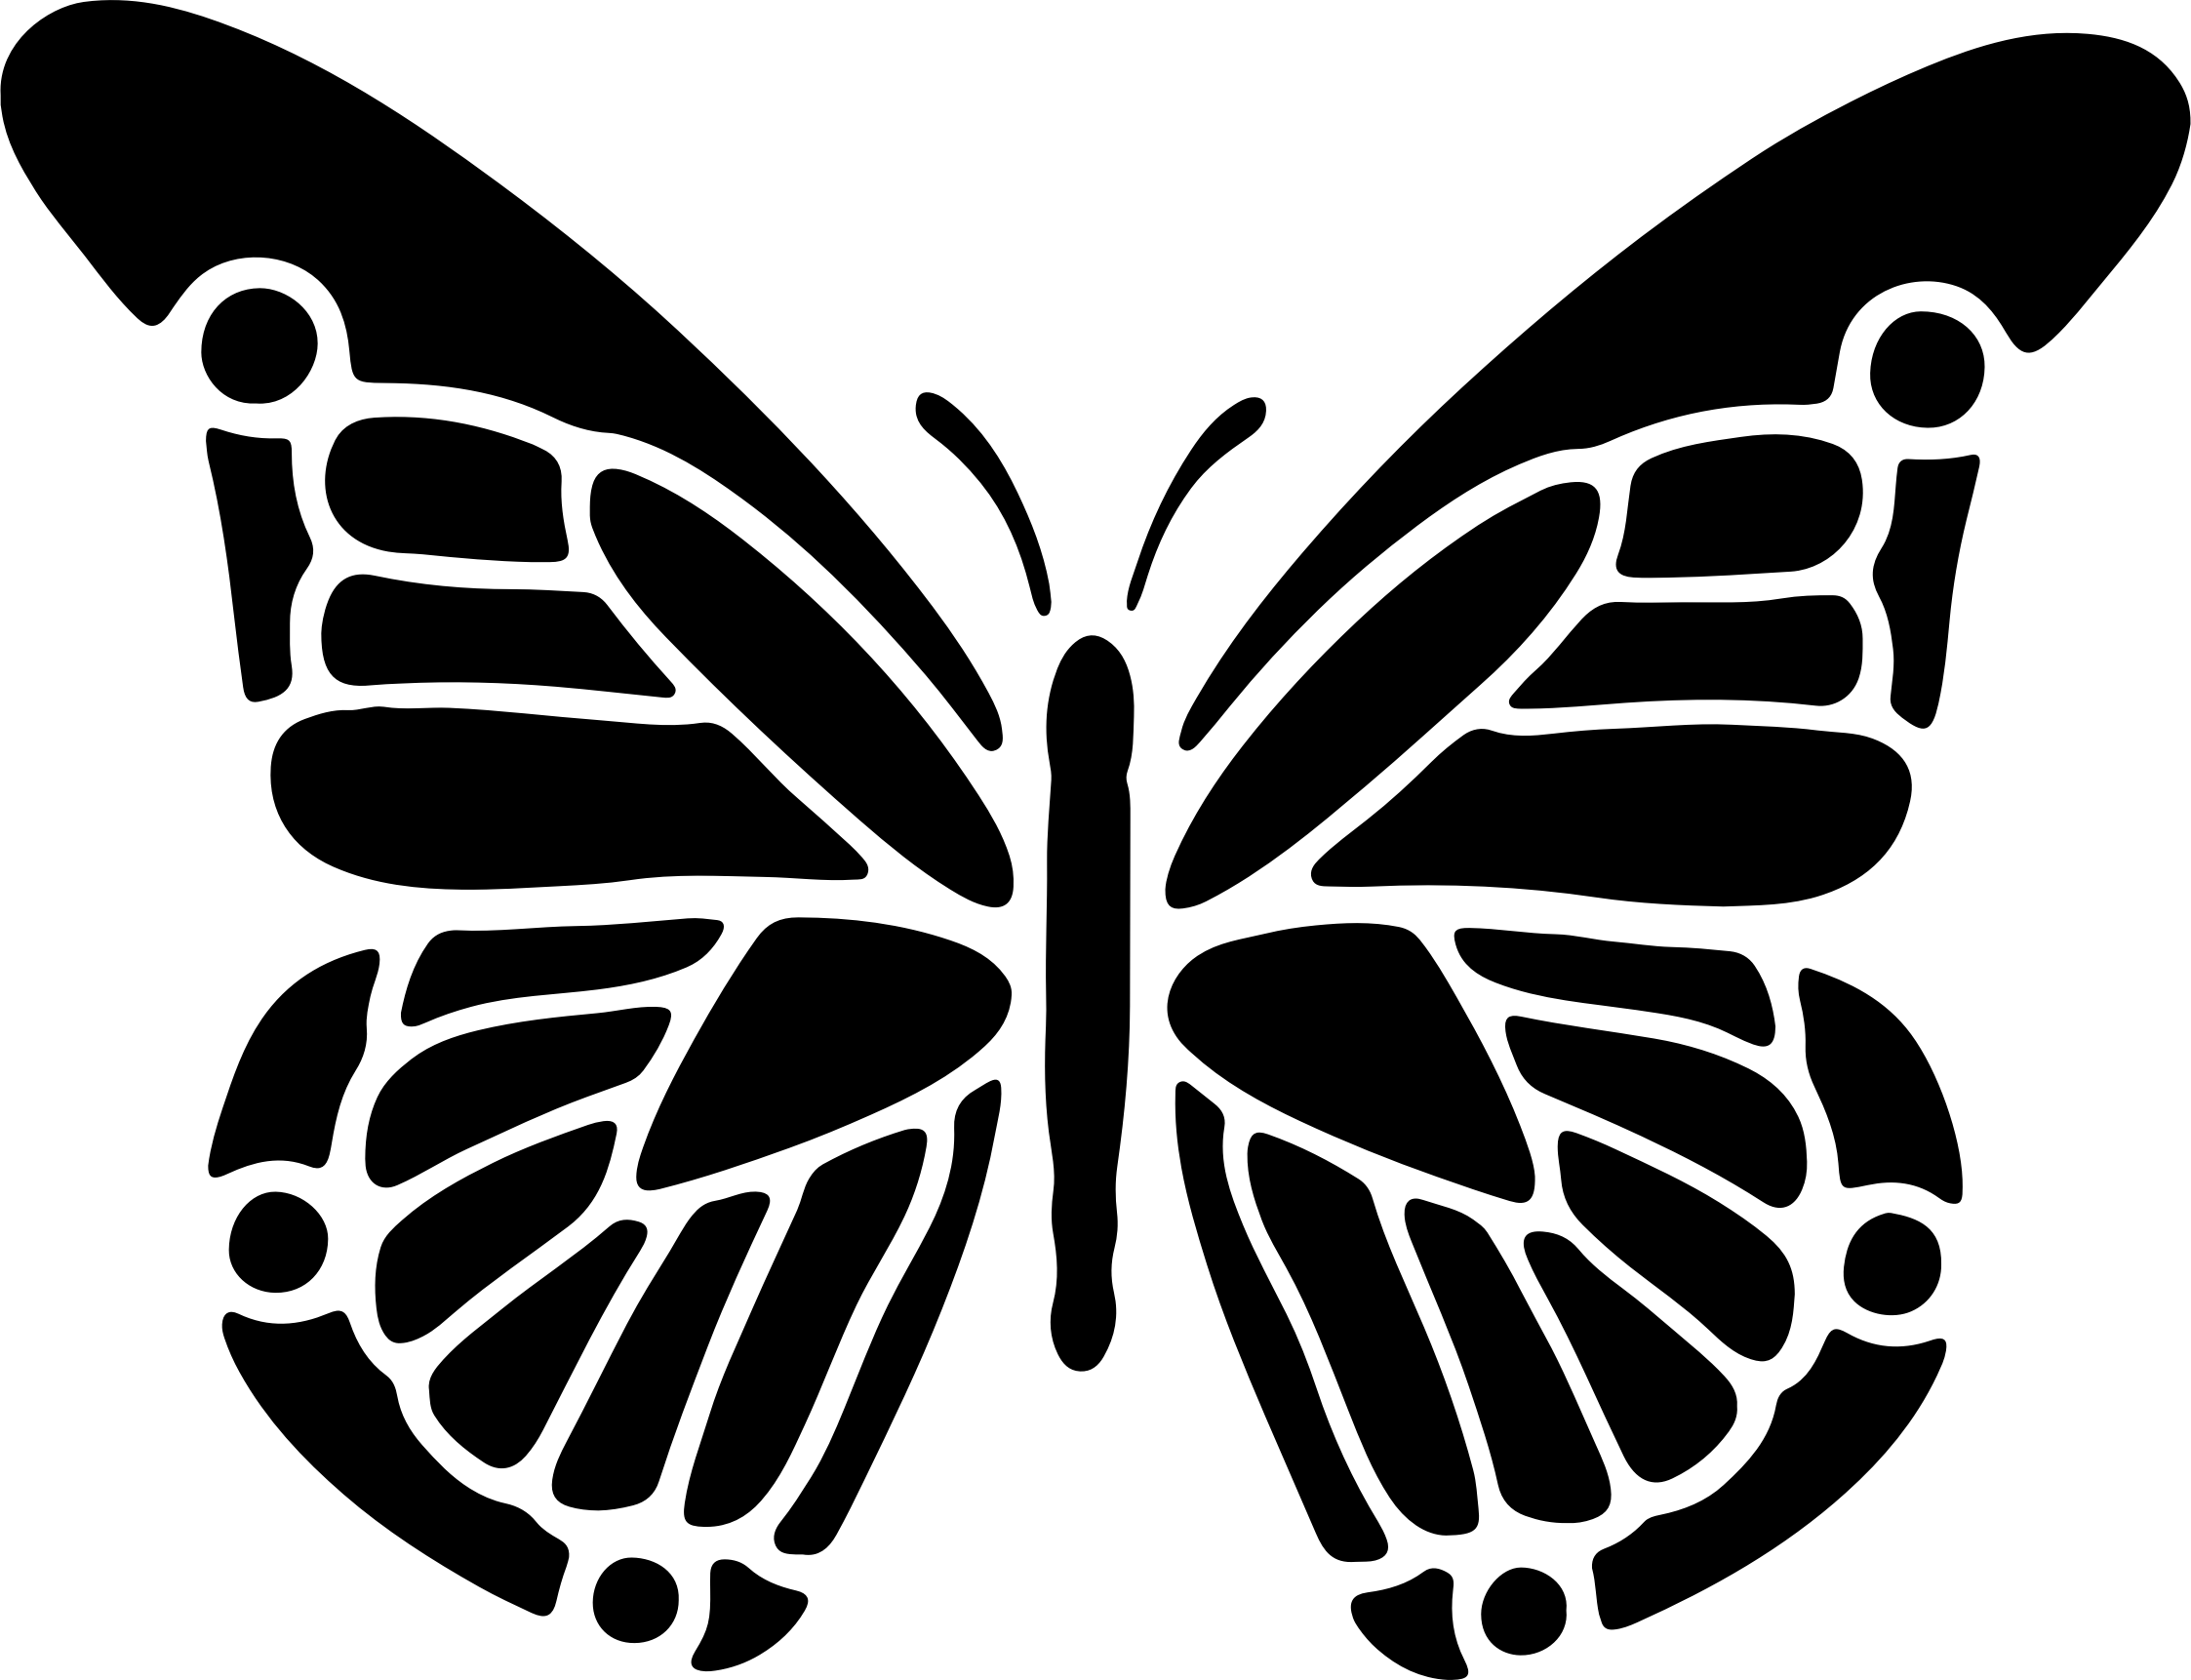 Free Butterfly Cliparts Silhouette Download Free Clip Art